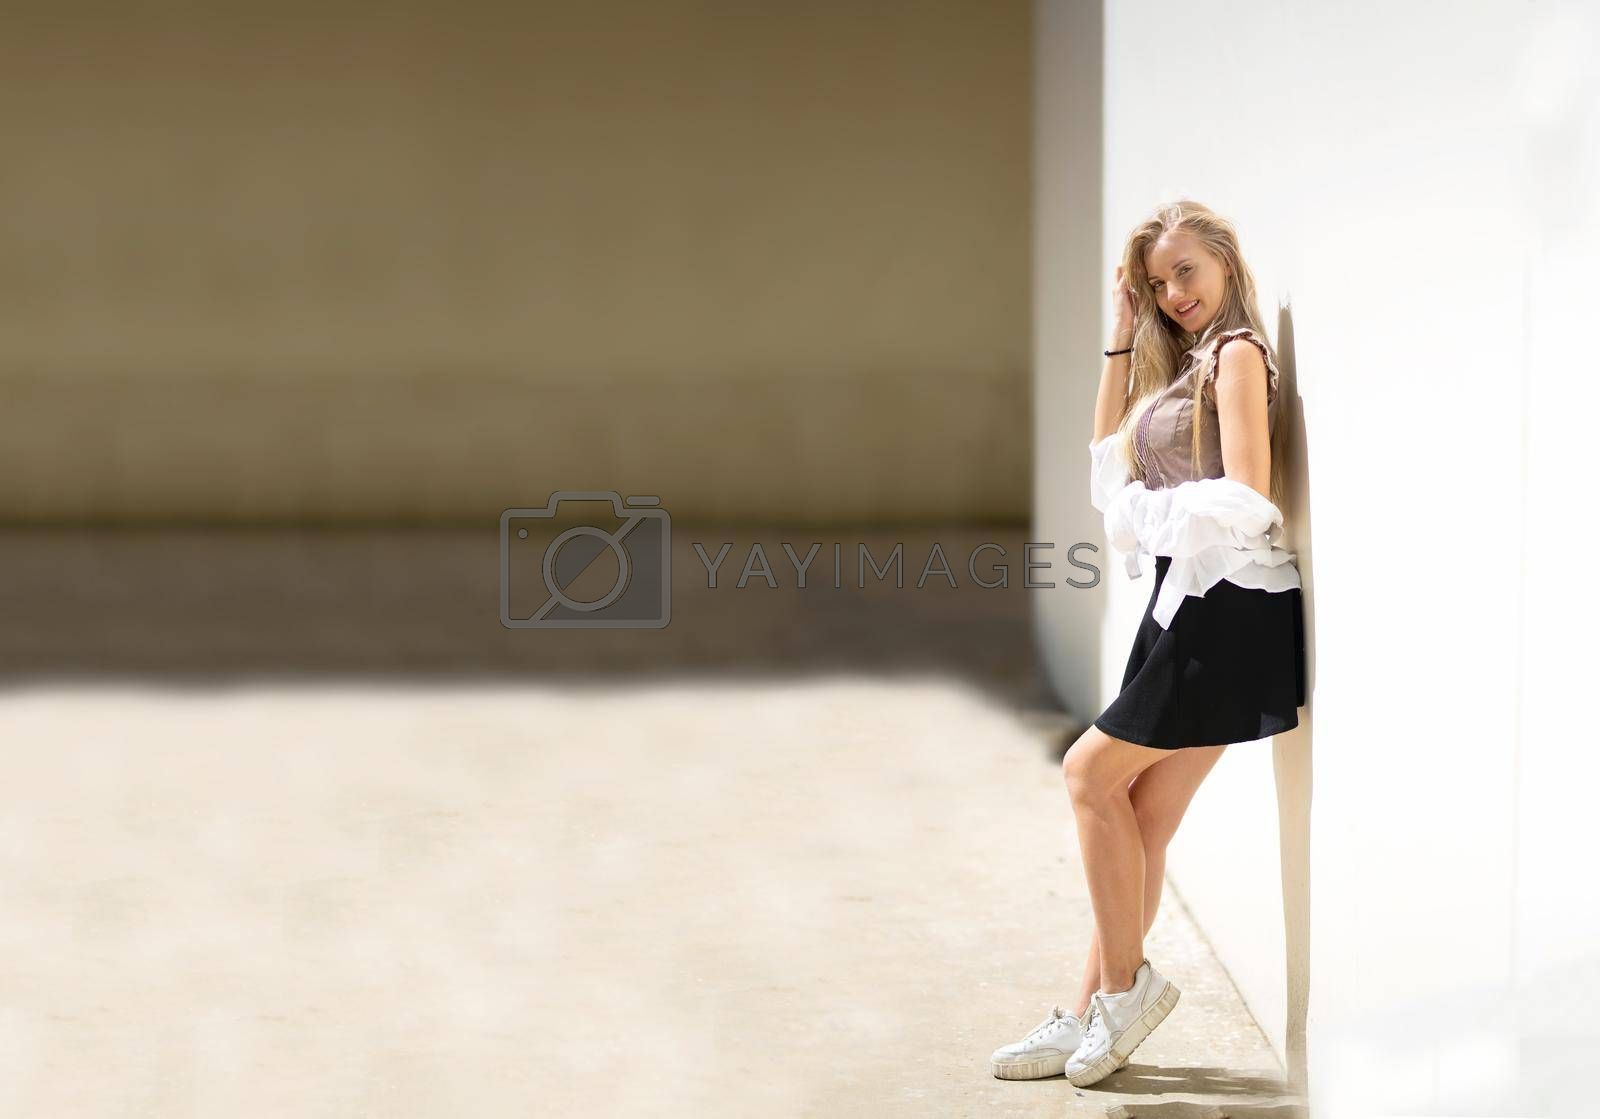 Royalty free image of Portrait of young beautiful woman blonde hair standing against wall with copy space by chuanchai